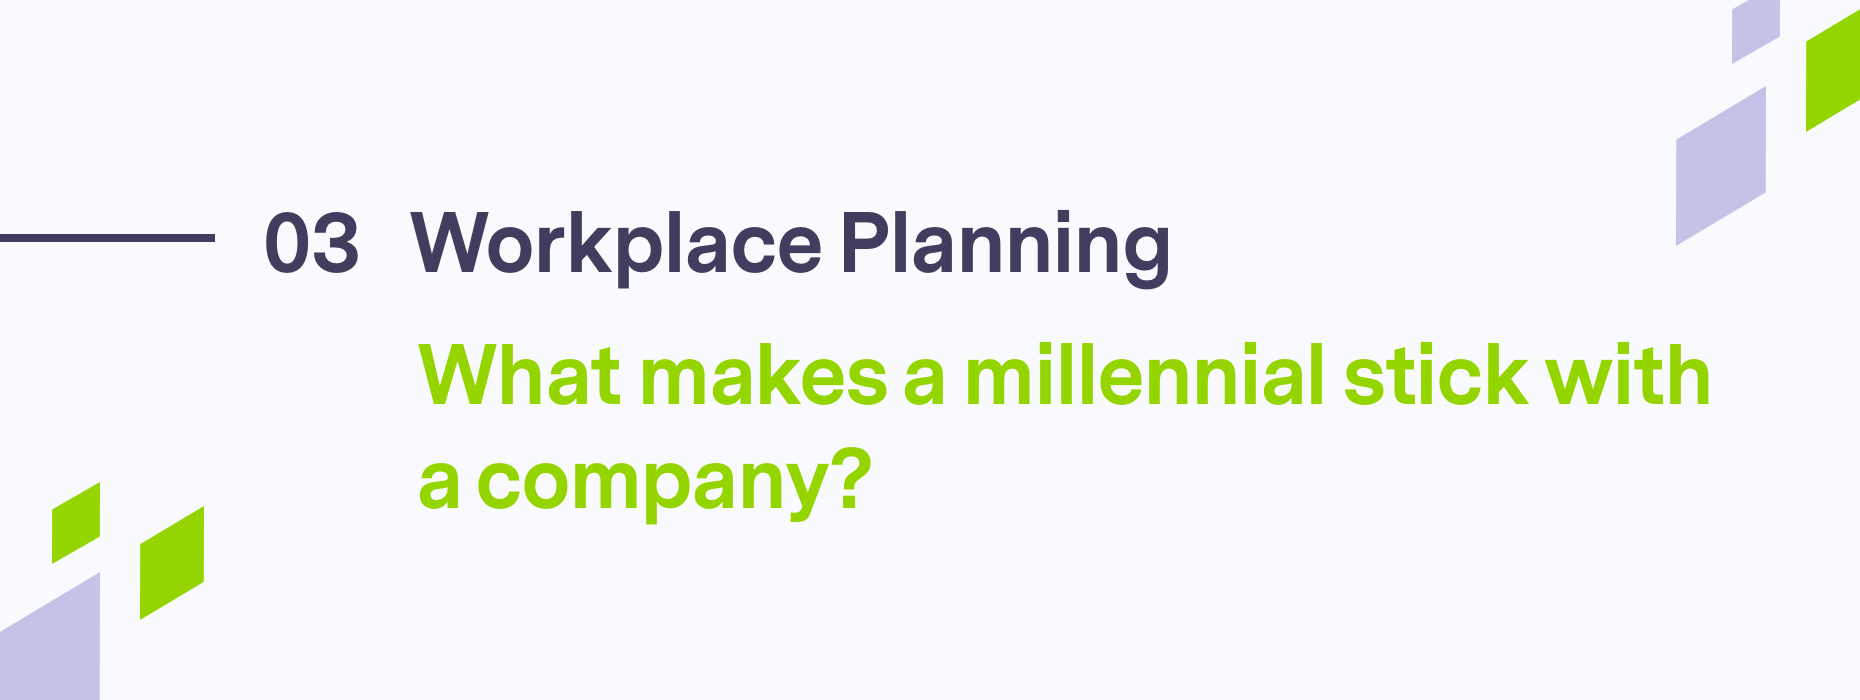 Workplace planning